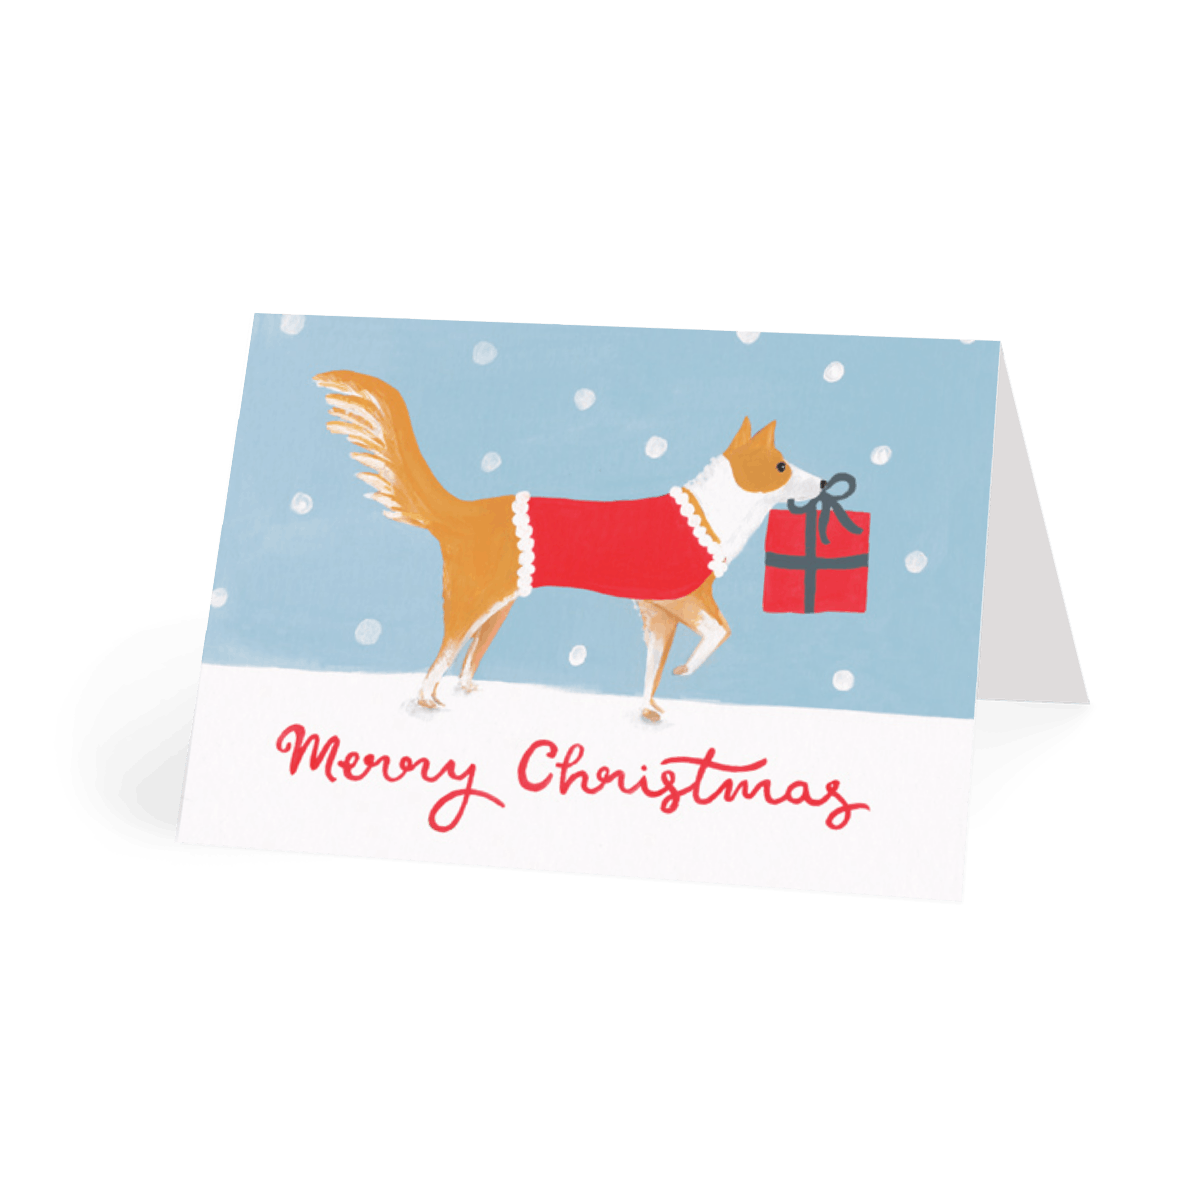 Https%3a%2f%2fwww.papier.com%2fproduct image%2f88746%2f14%2fchristmas collie 22345 front 1569426467.png?ixlib=rb 1.1